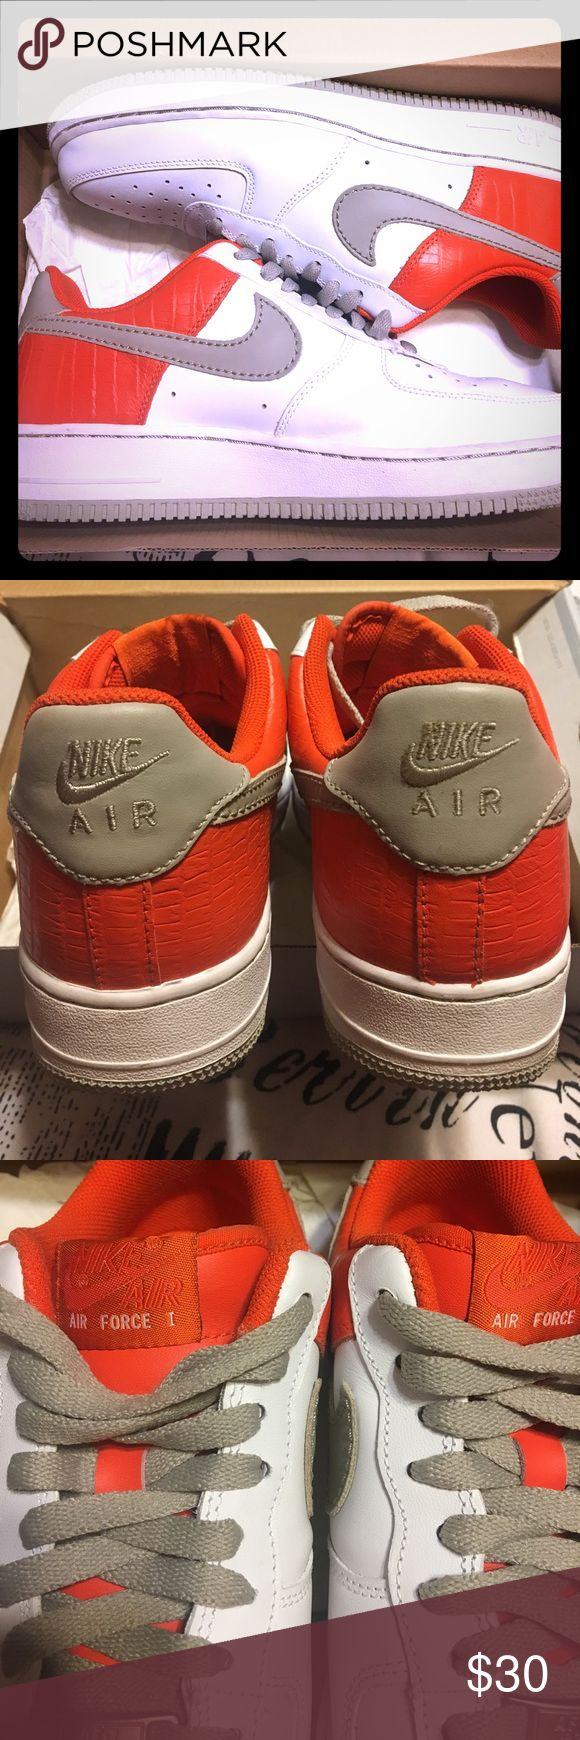 Woman's Air Force 1 Like new Nike Air Force 1 , size 10 worn once Nike Shoes Sneakers